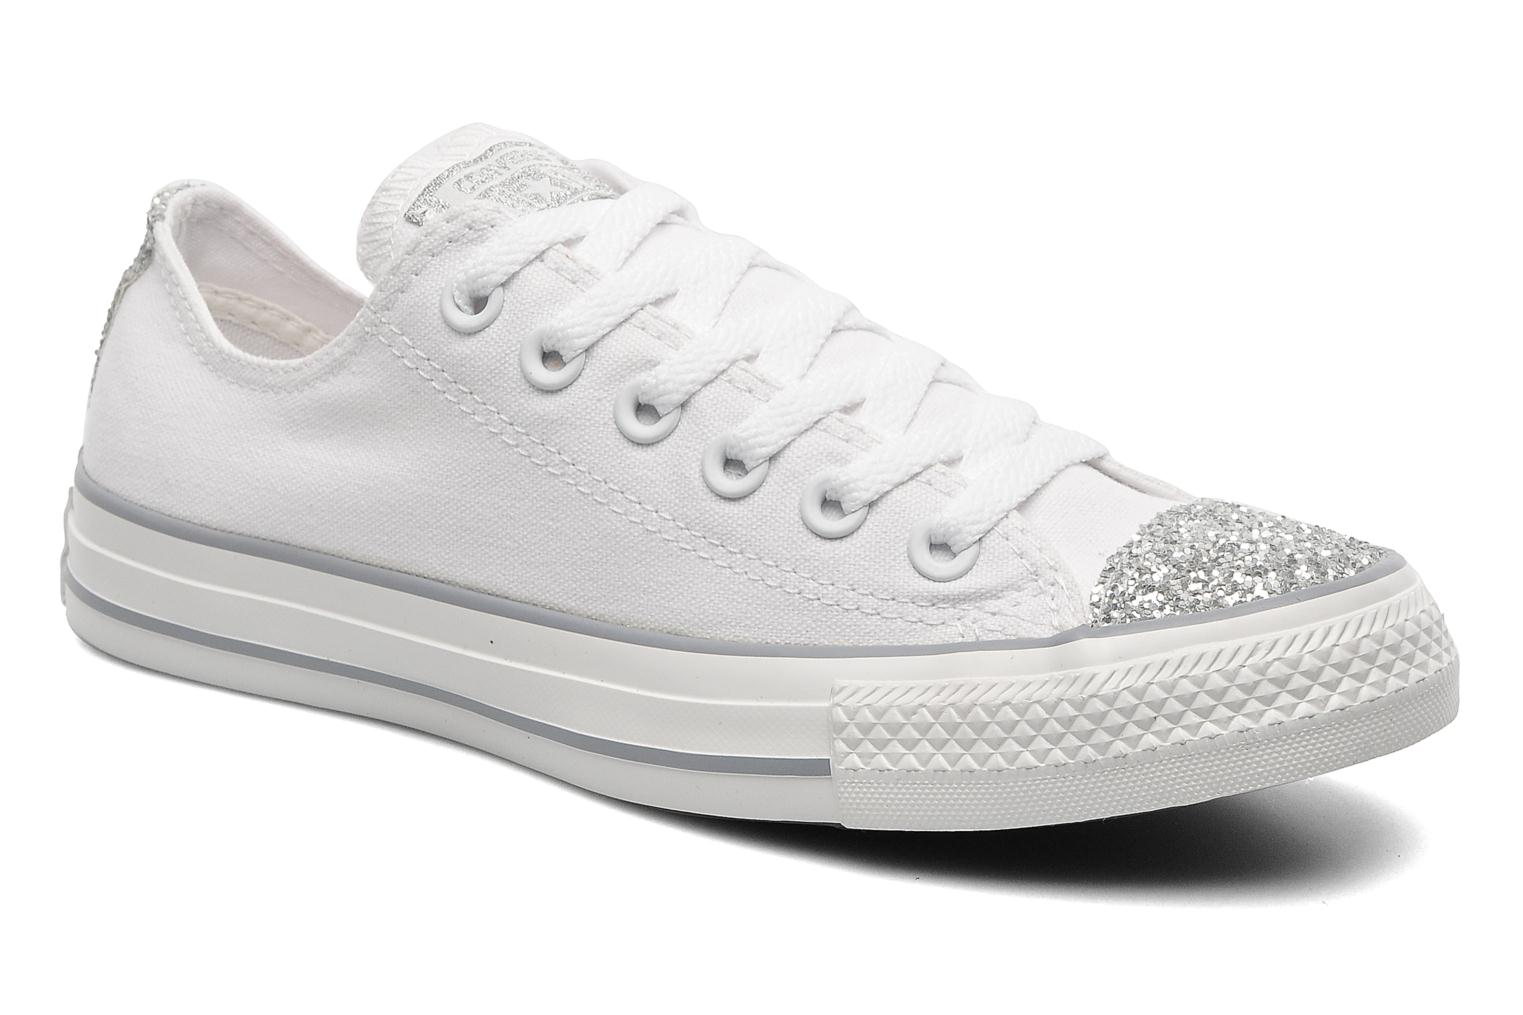 converse chuck taylor toecap sparkle ox w trainers in. Black Bedroom Furniture Sets. Home Design Ideas